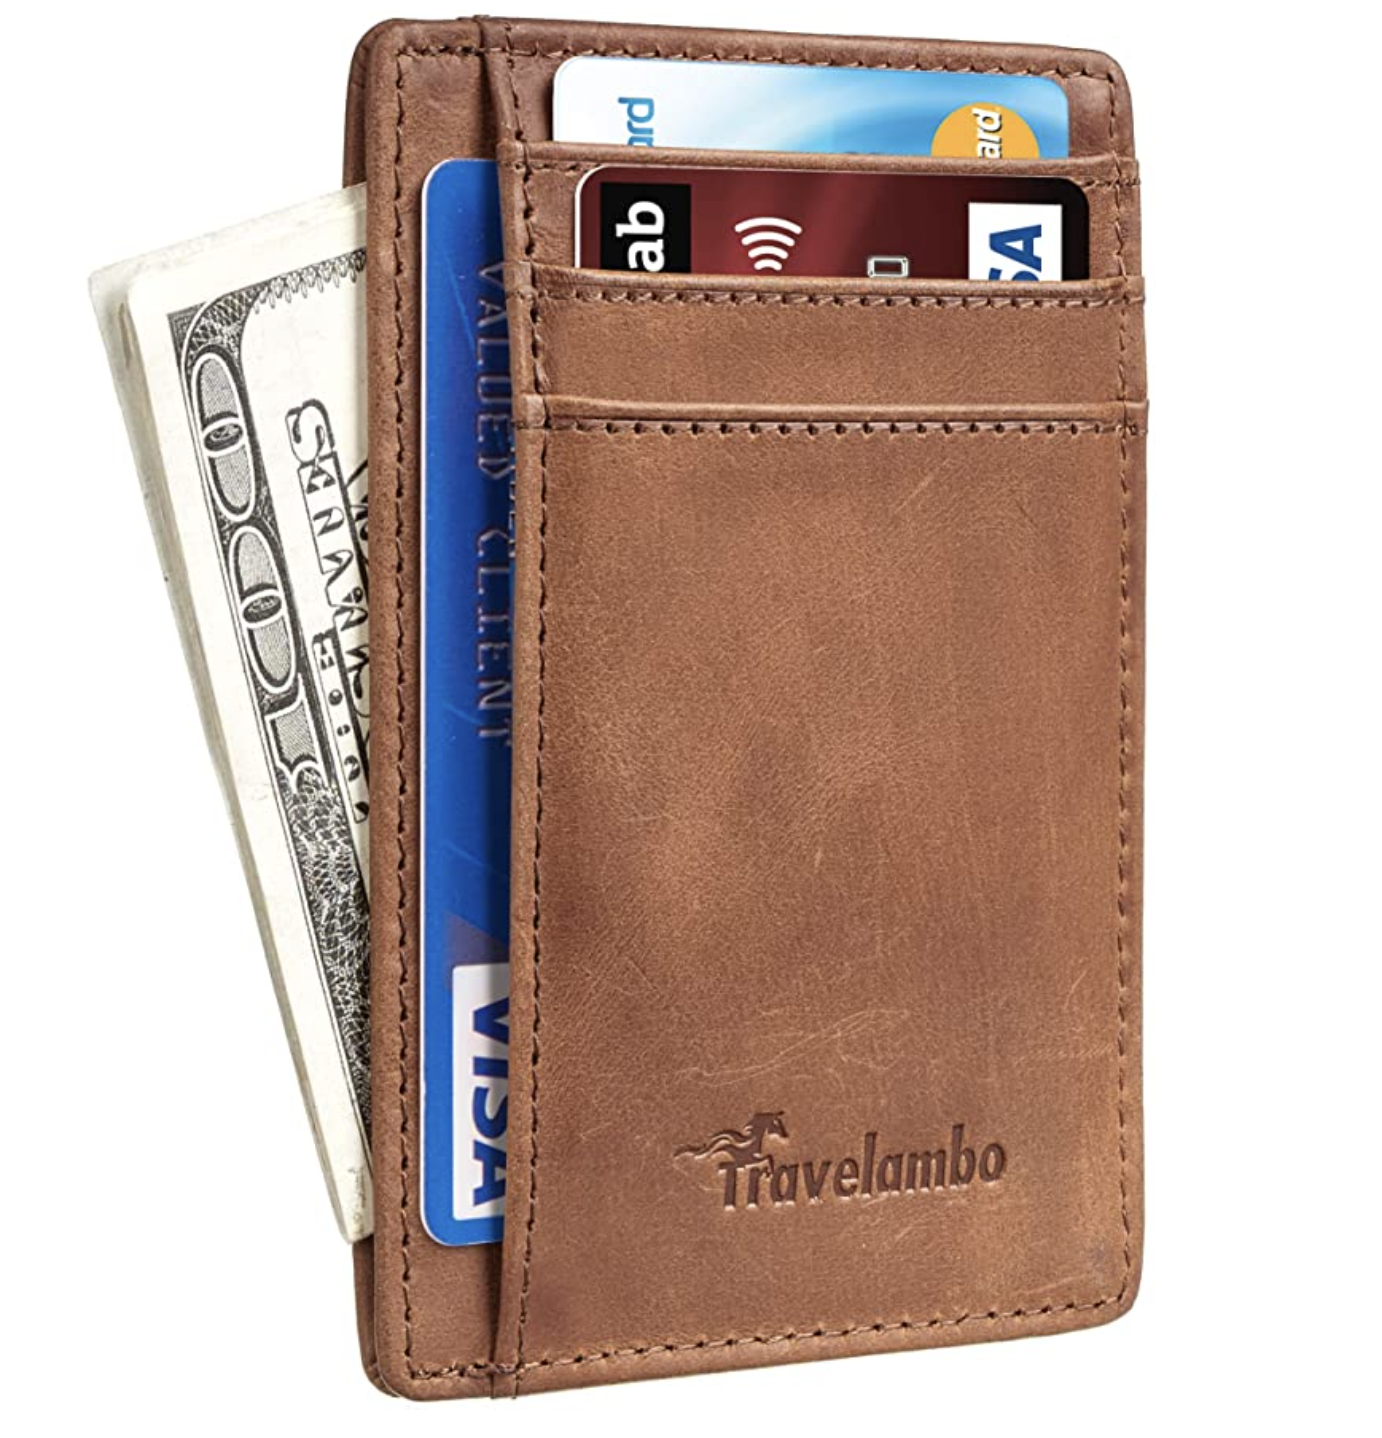 Travelambo Vintage Front Pocket Minimalist Leather Slim RFID Wallet